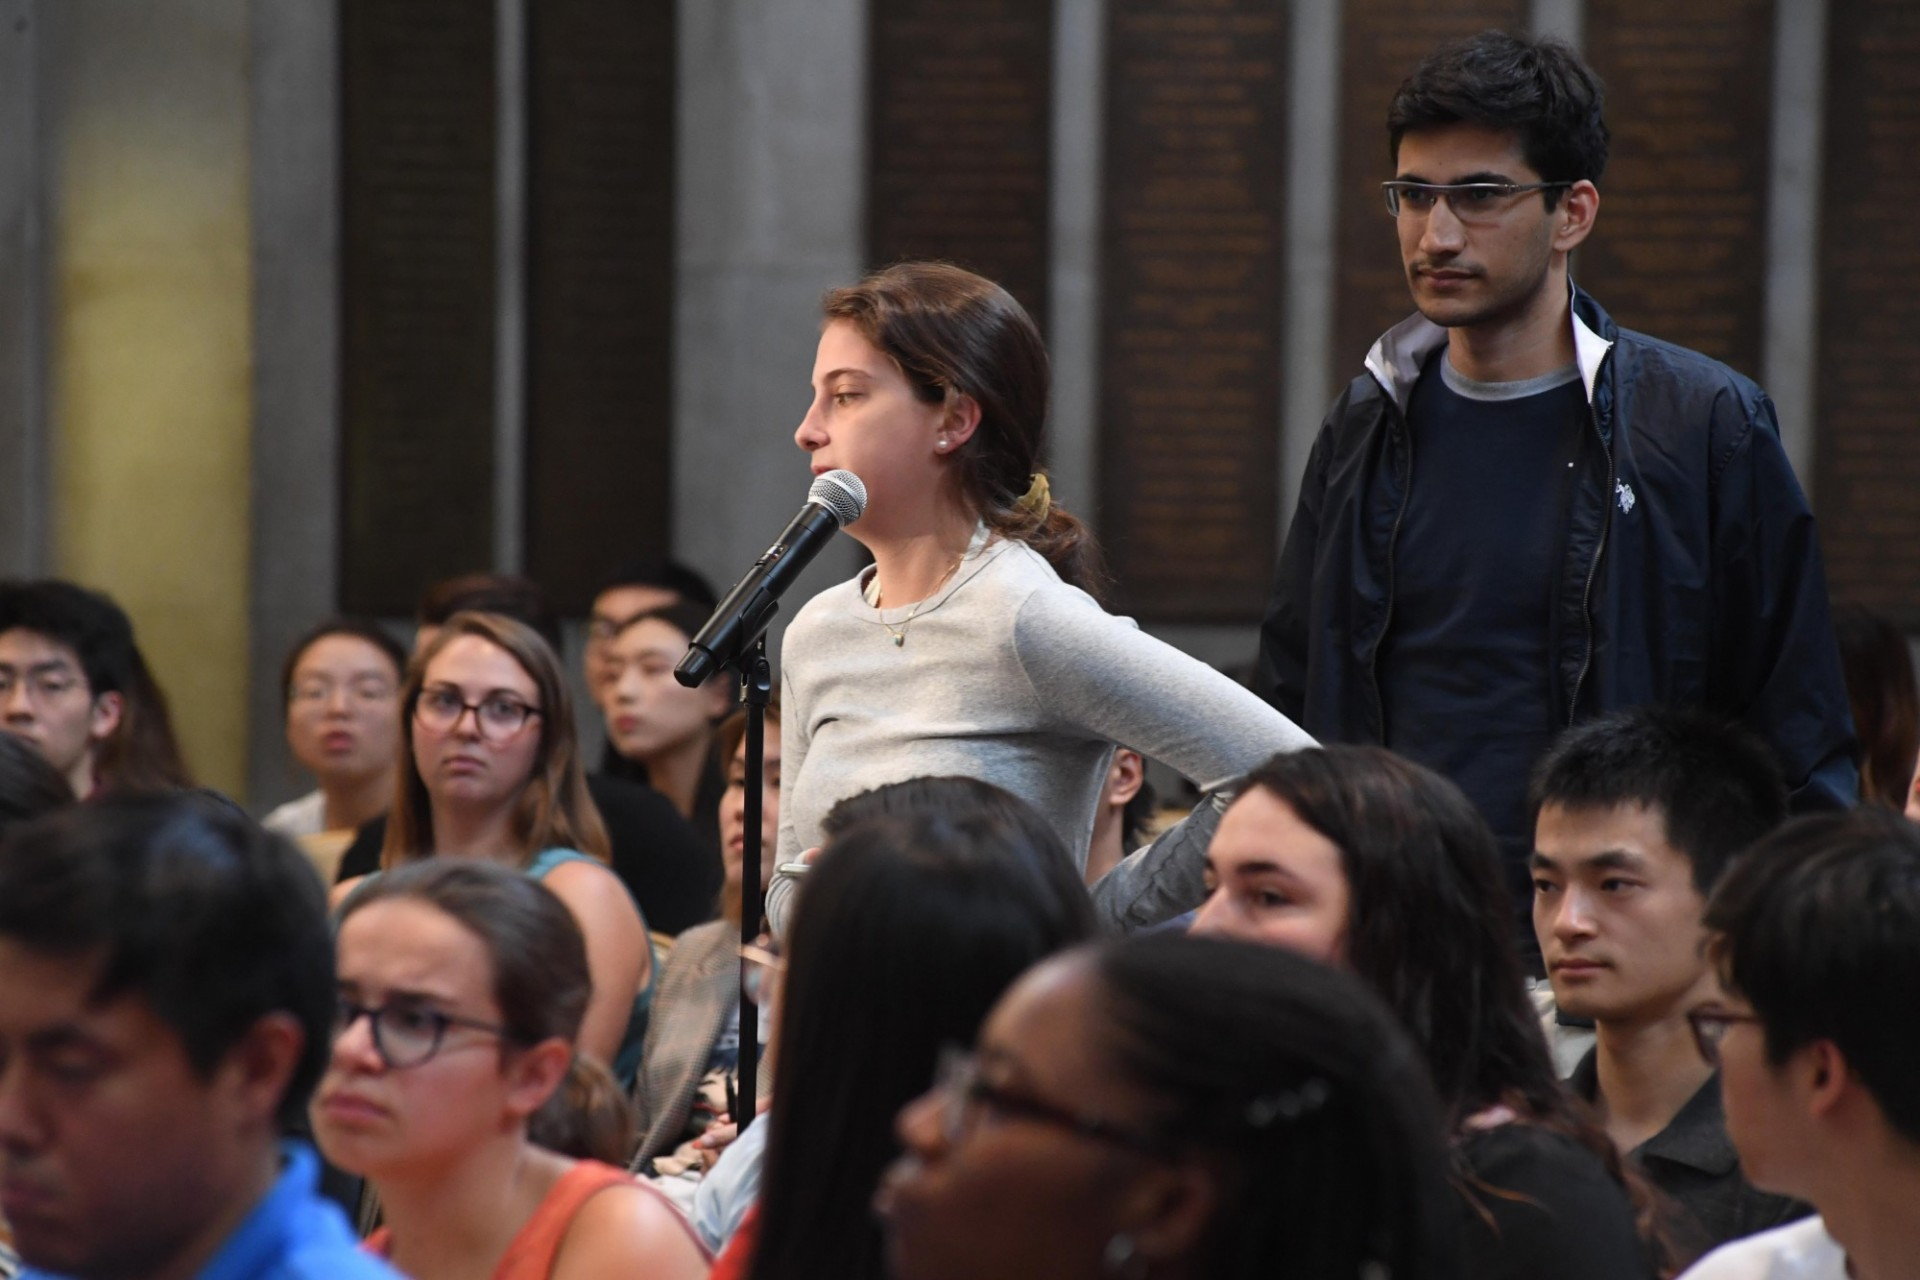 Columbia University students line up to ask Jayathma Wickramanayake, UN Secretary-General's Envoy on Youth questions during the question and answer session.